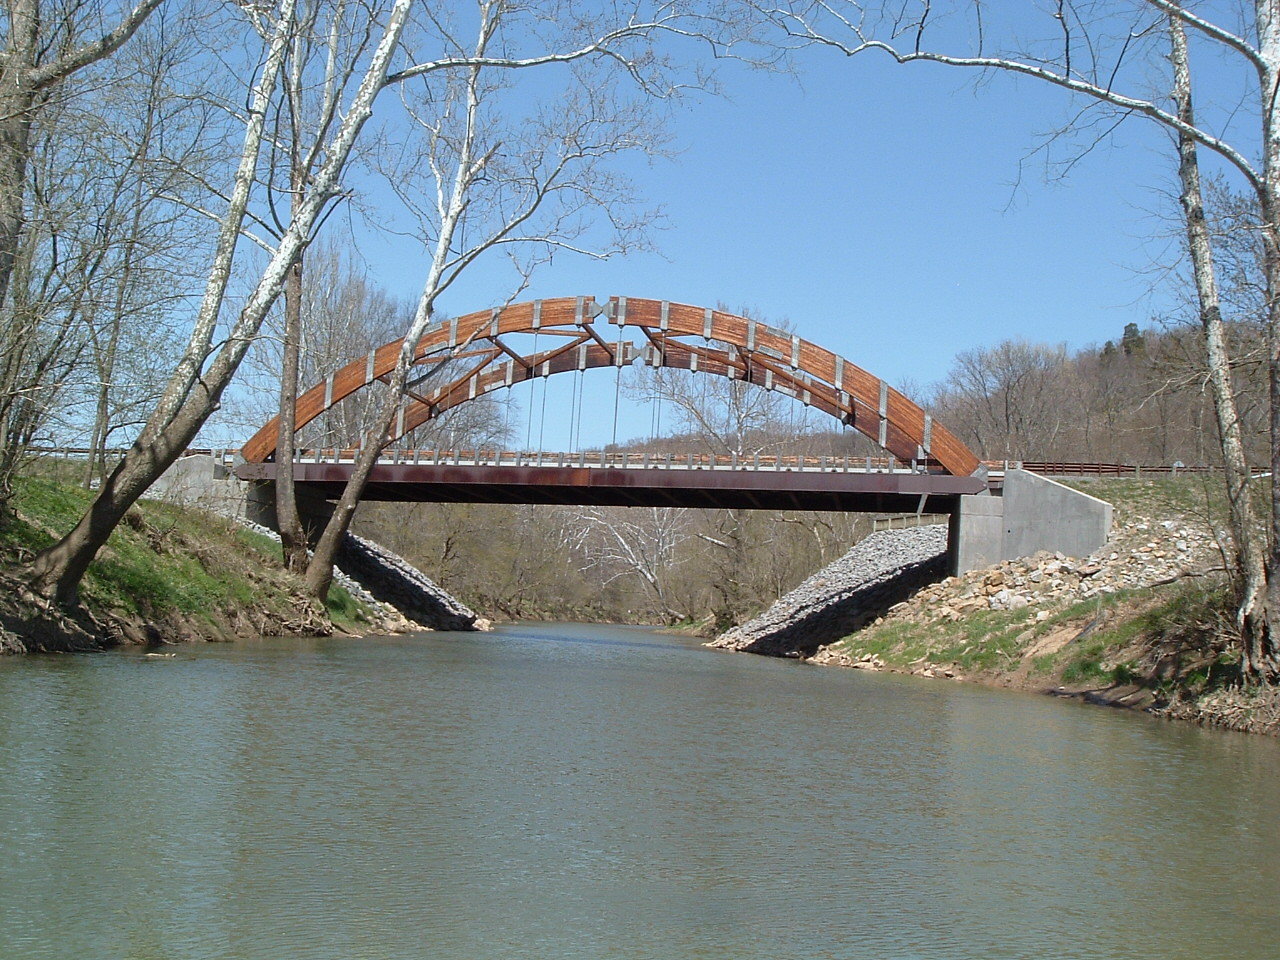 West Buckeye Bridge by Mason-Dixon Historical Park, on Dunkard Creek WV.